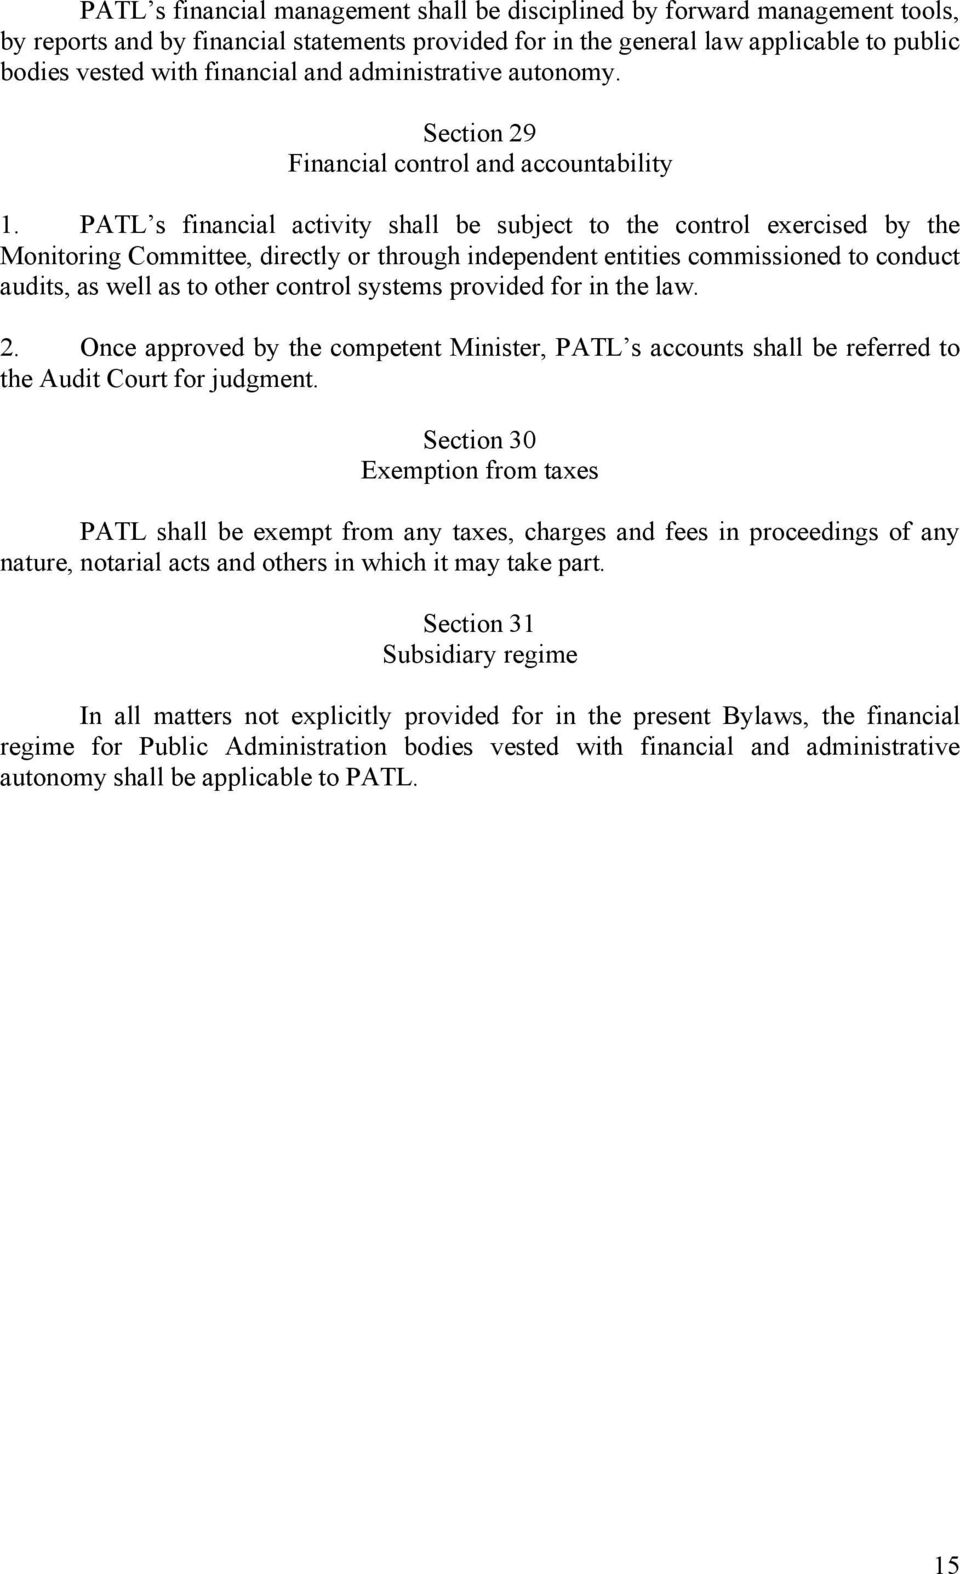 PATL s financial activity shall be subject to the control exercised by the Monitoring Committee, directly or through independent entities commissioned to conduct audits, as well as to other control